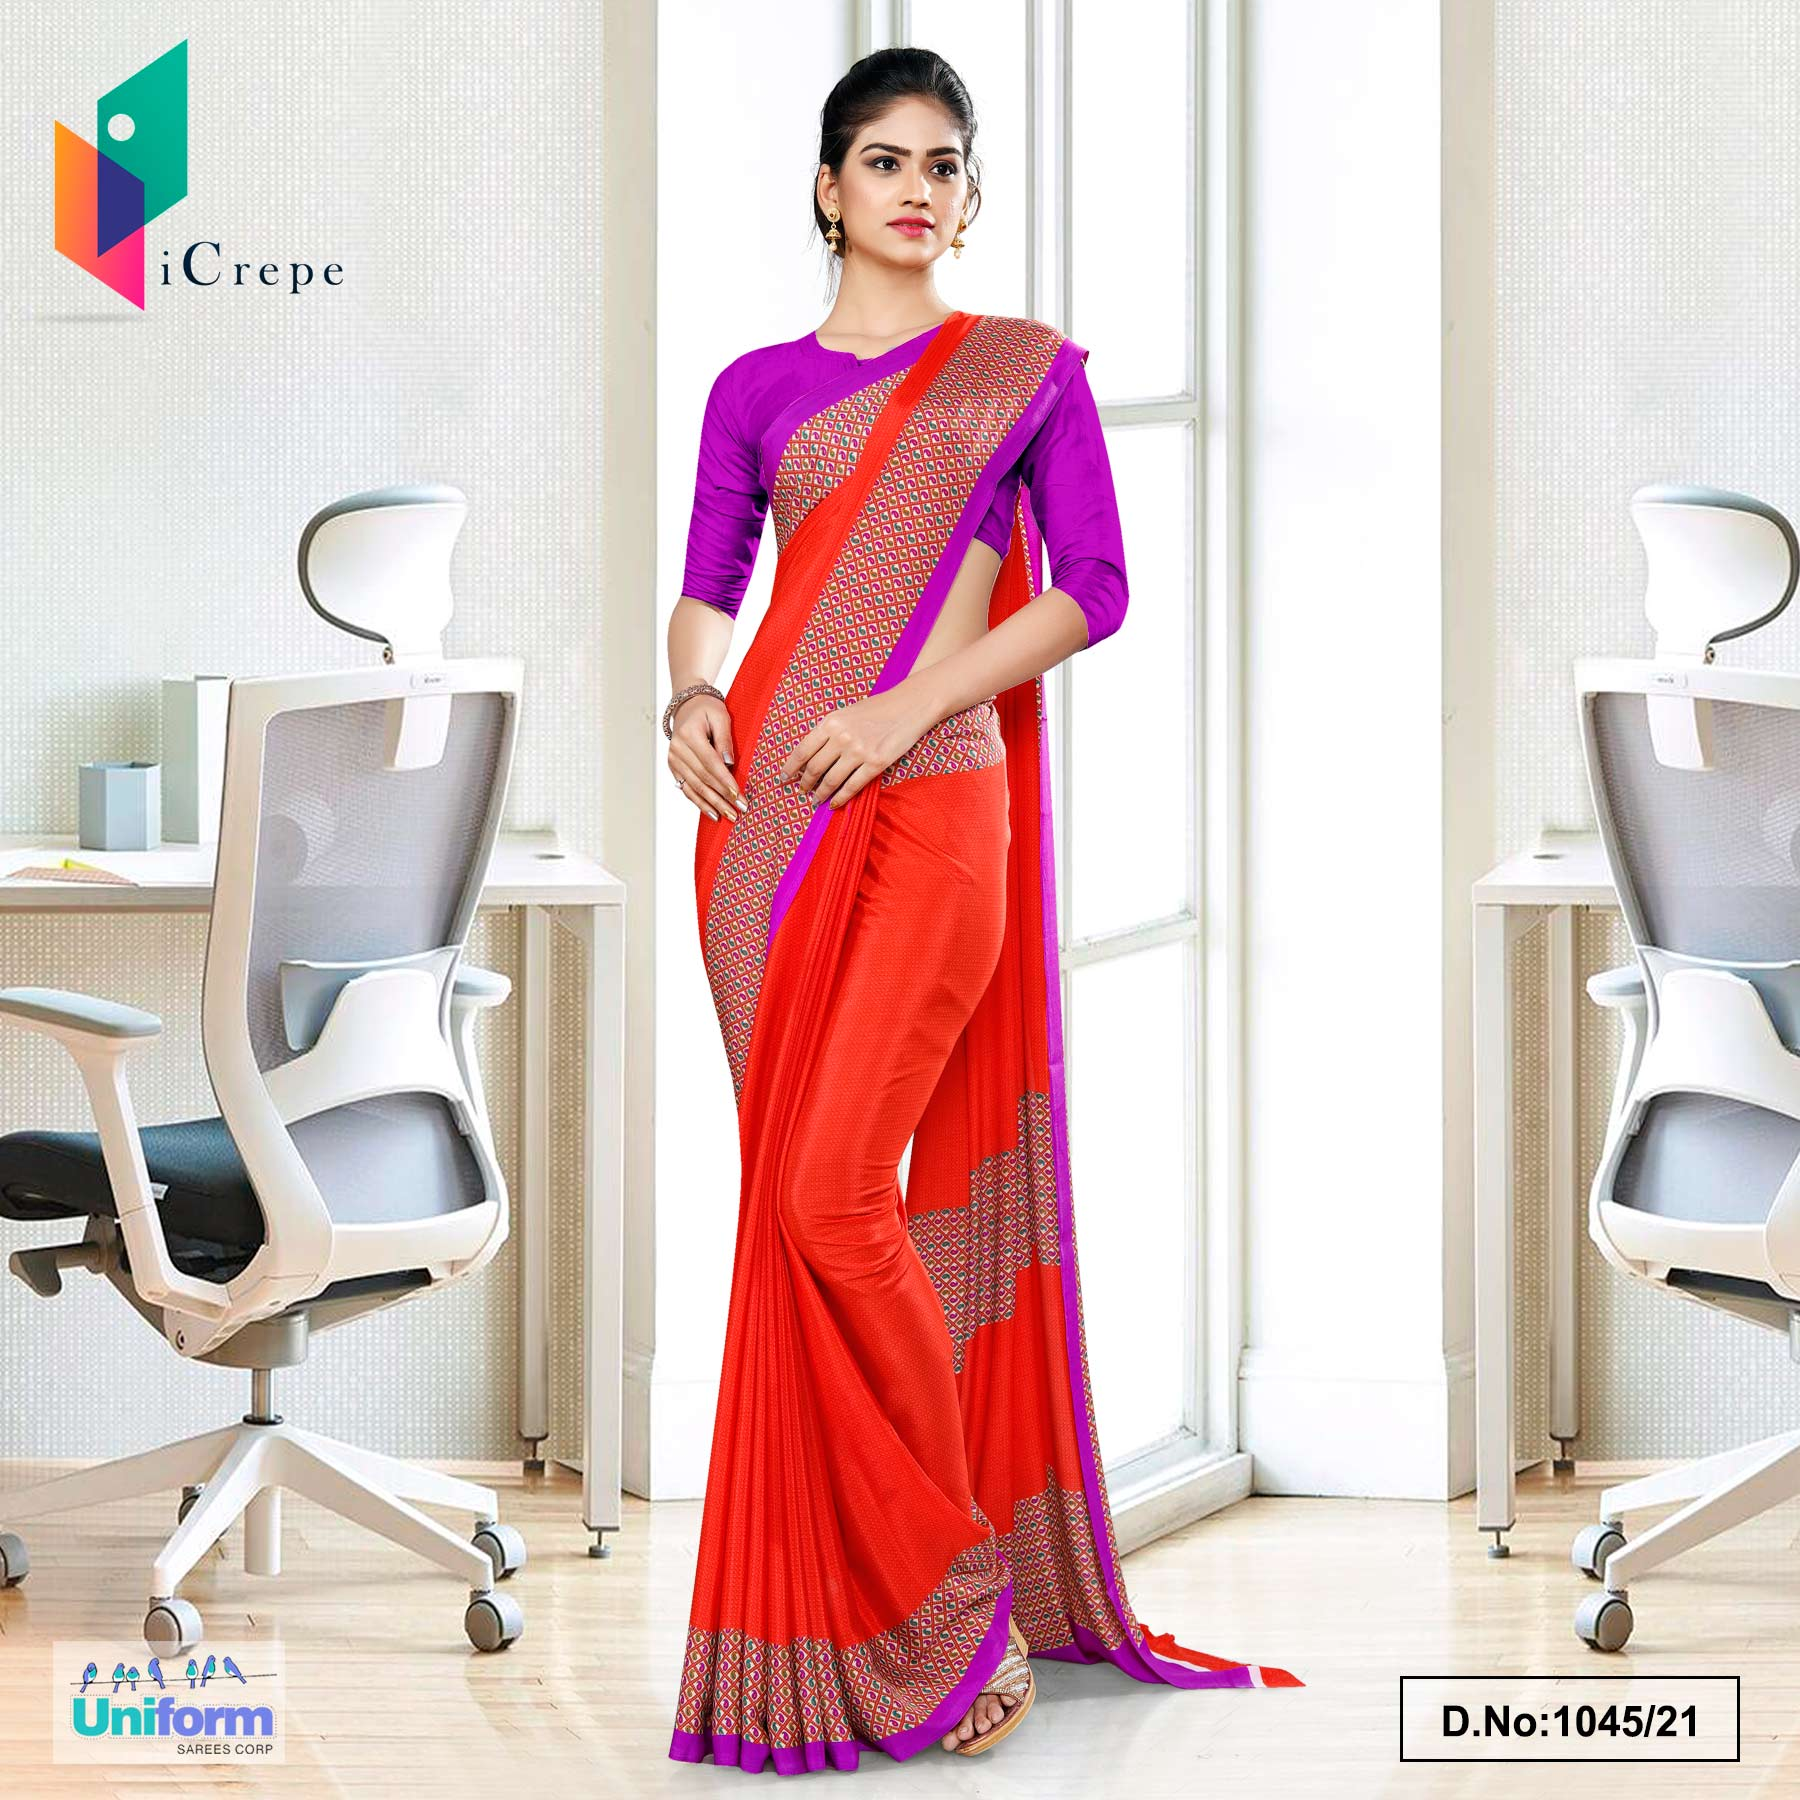 Tomato Lavender Premium Italian Silk Crepe Uniform Sarees for Office Wear